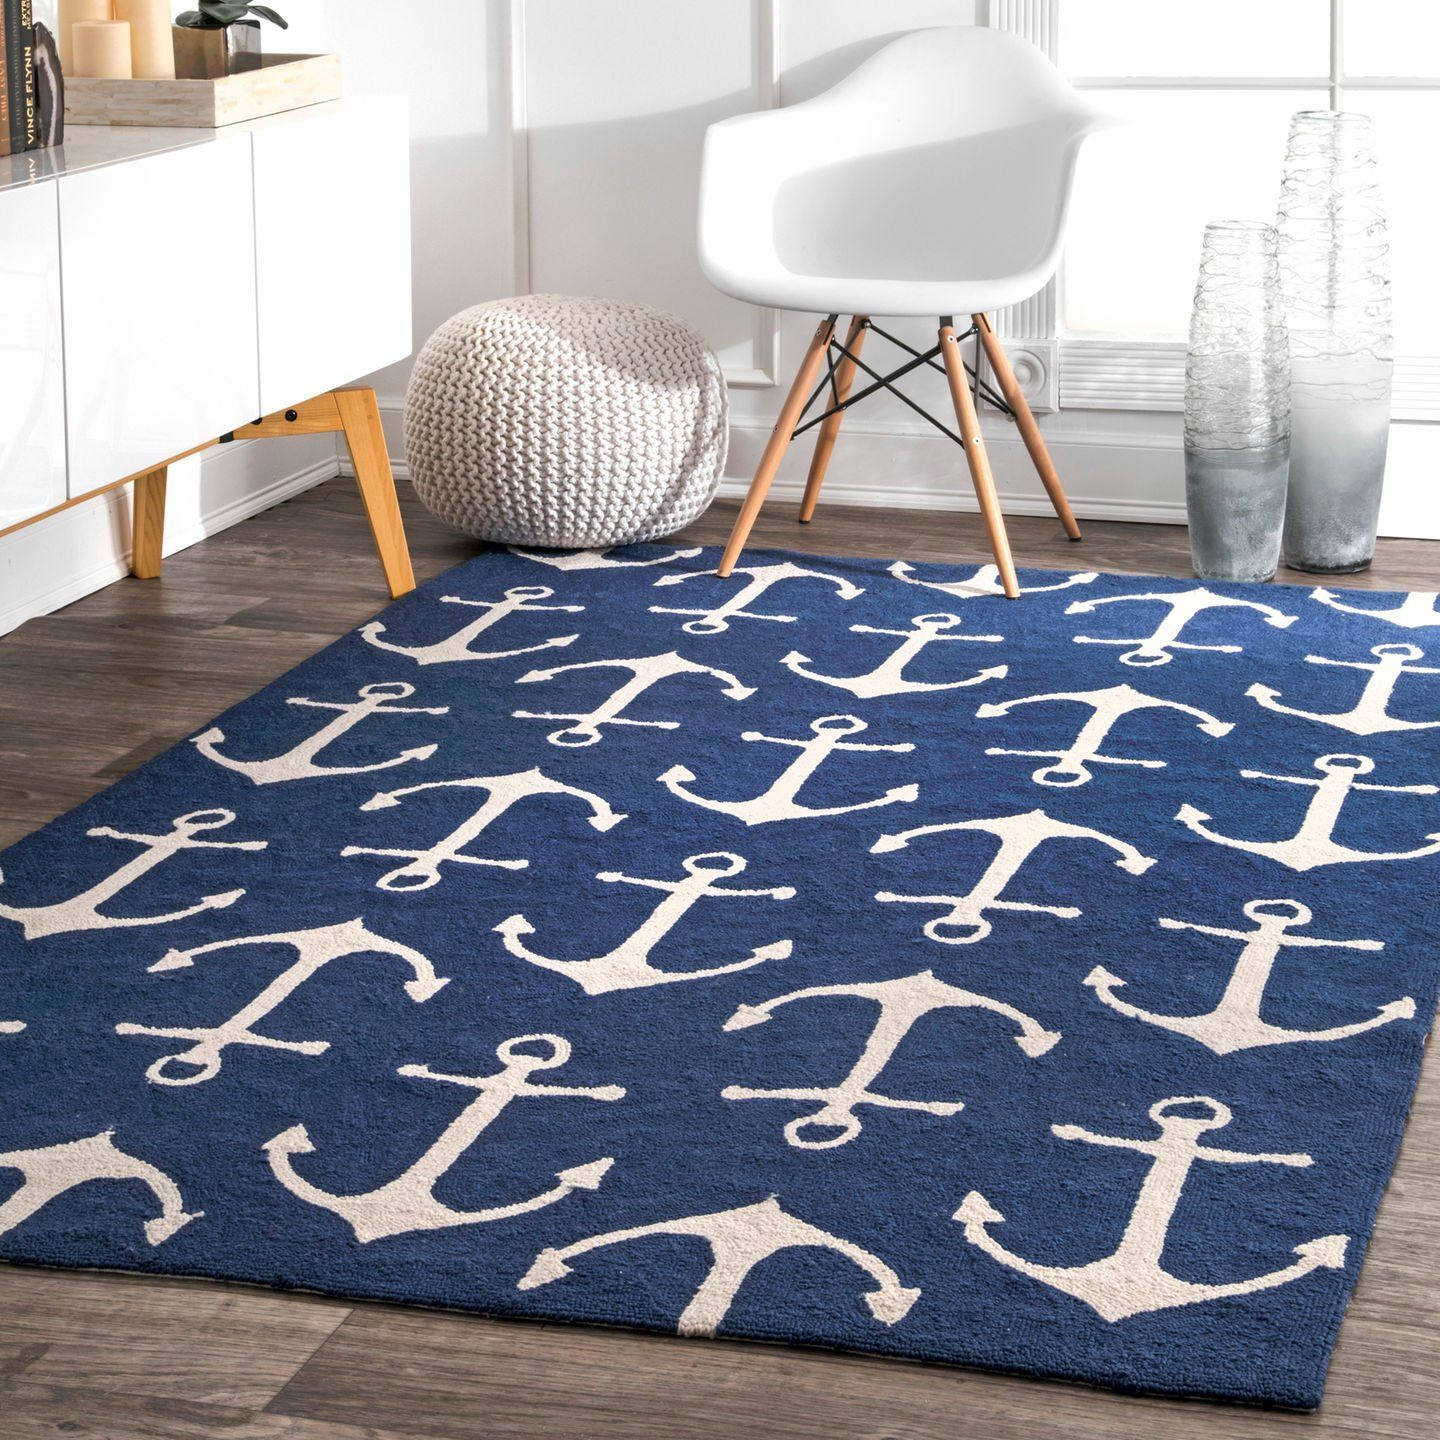 50 Anchor Rugs And Anchor Area Rugs 2020 Beachfront Decor Nautical Rugs Indoor Outdoor Area Rugs Outdoor Rugs